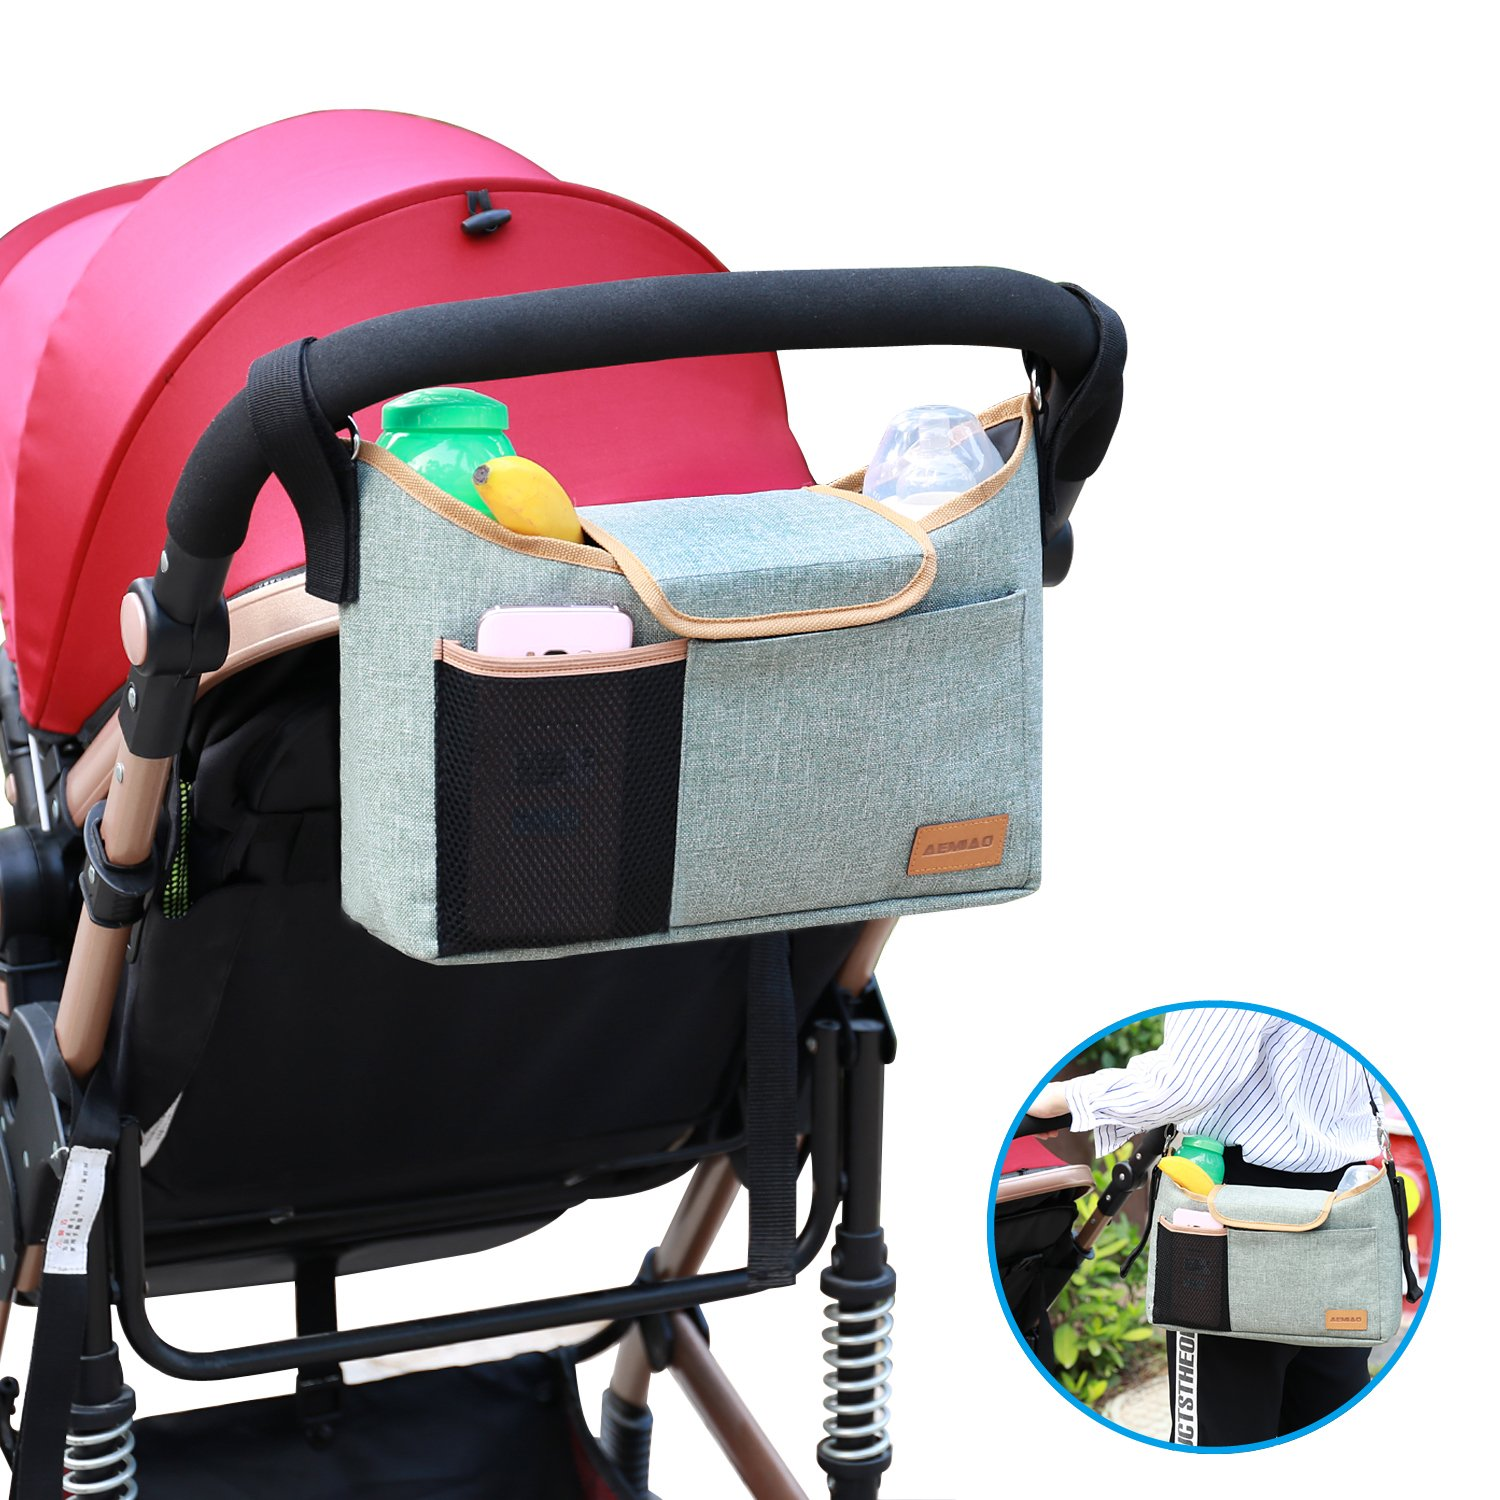 AEMIAO Universal Portable Baby Jogger Stroller Organiser Pram Buggy Storage Bag with Shoulder Strap, Two Cup Holders & Mobile Phone Holder, Extra Storage Space for Toys Food Accessories - Green